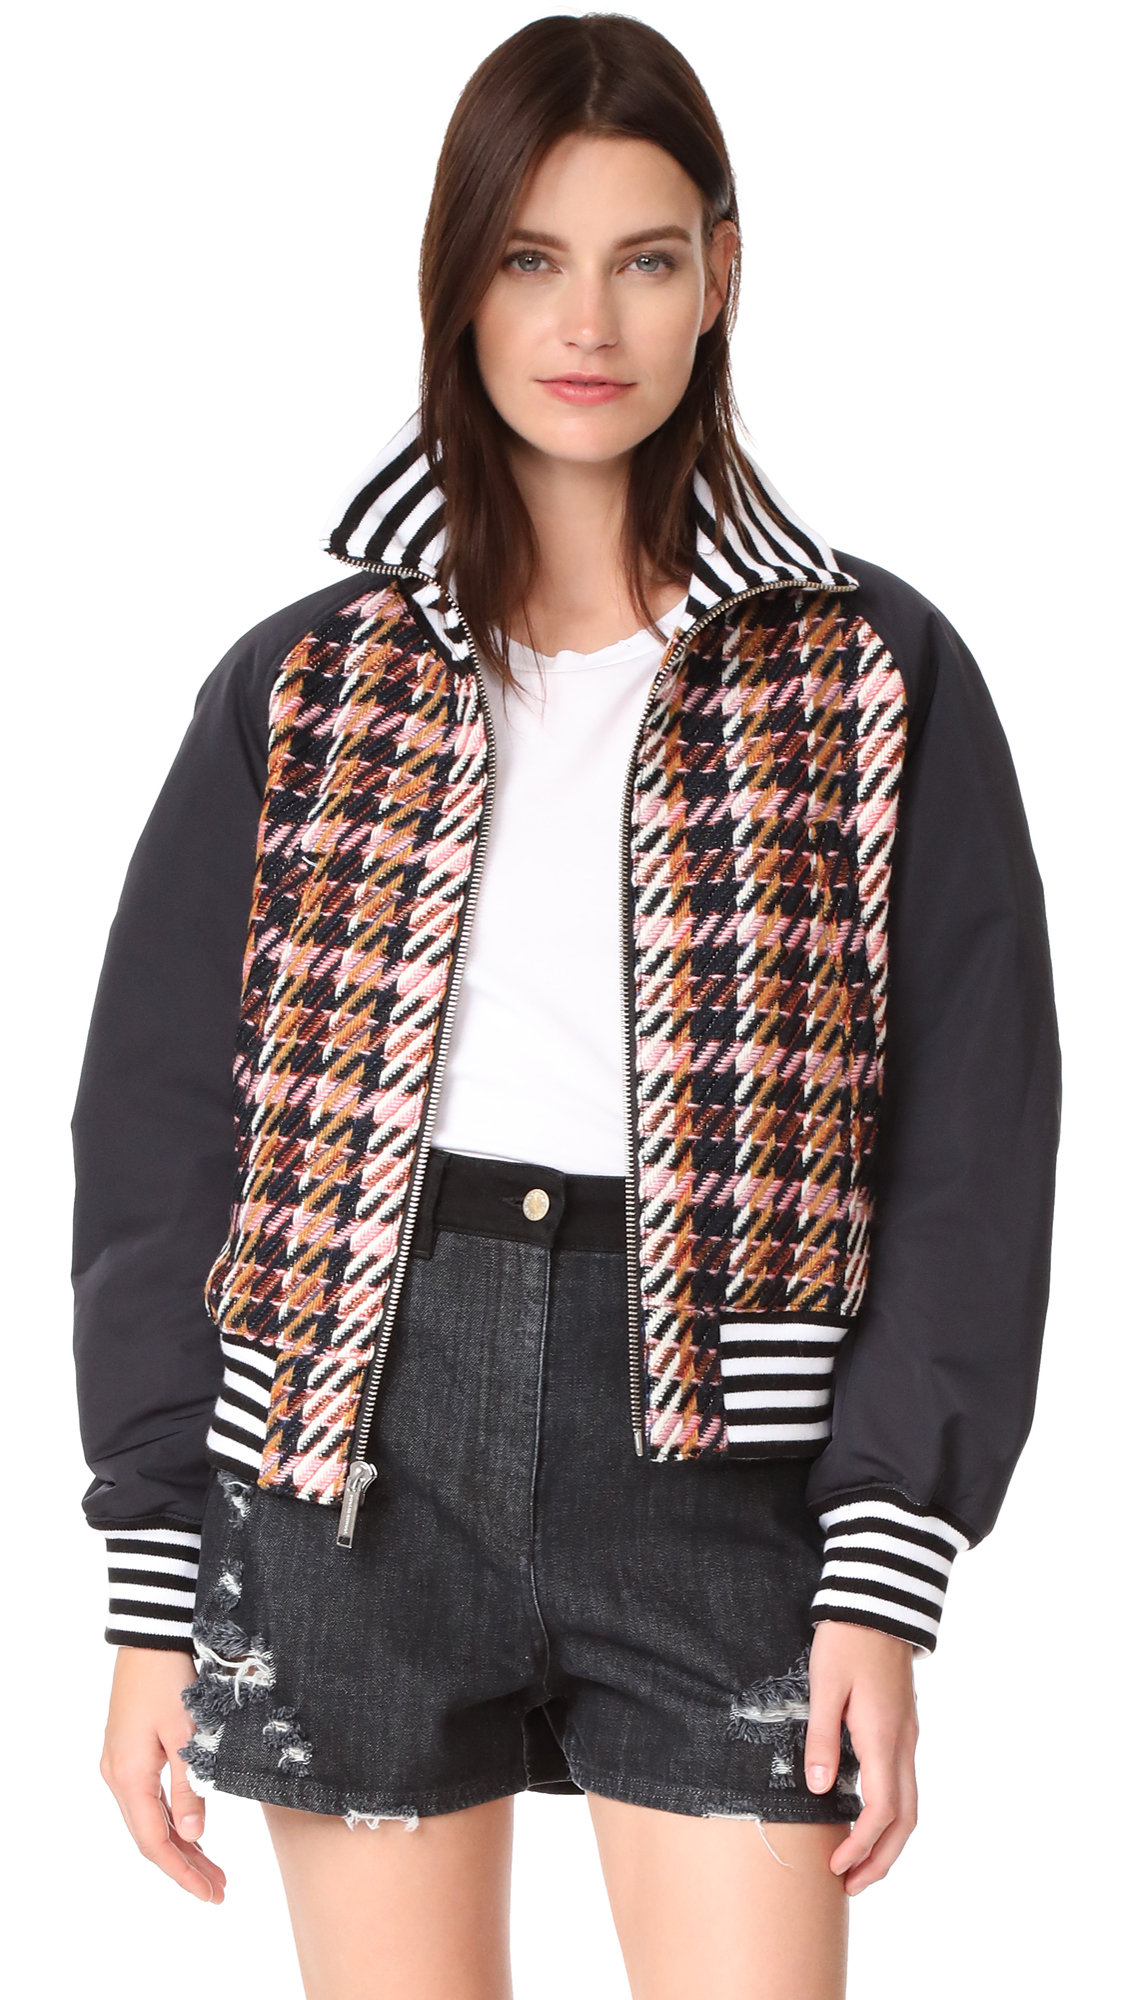 Public School Jam Zita Jacket - Multi